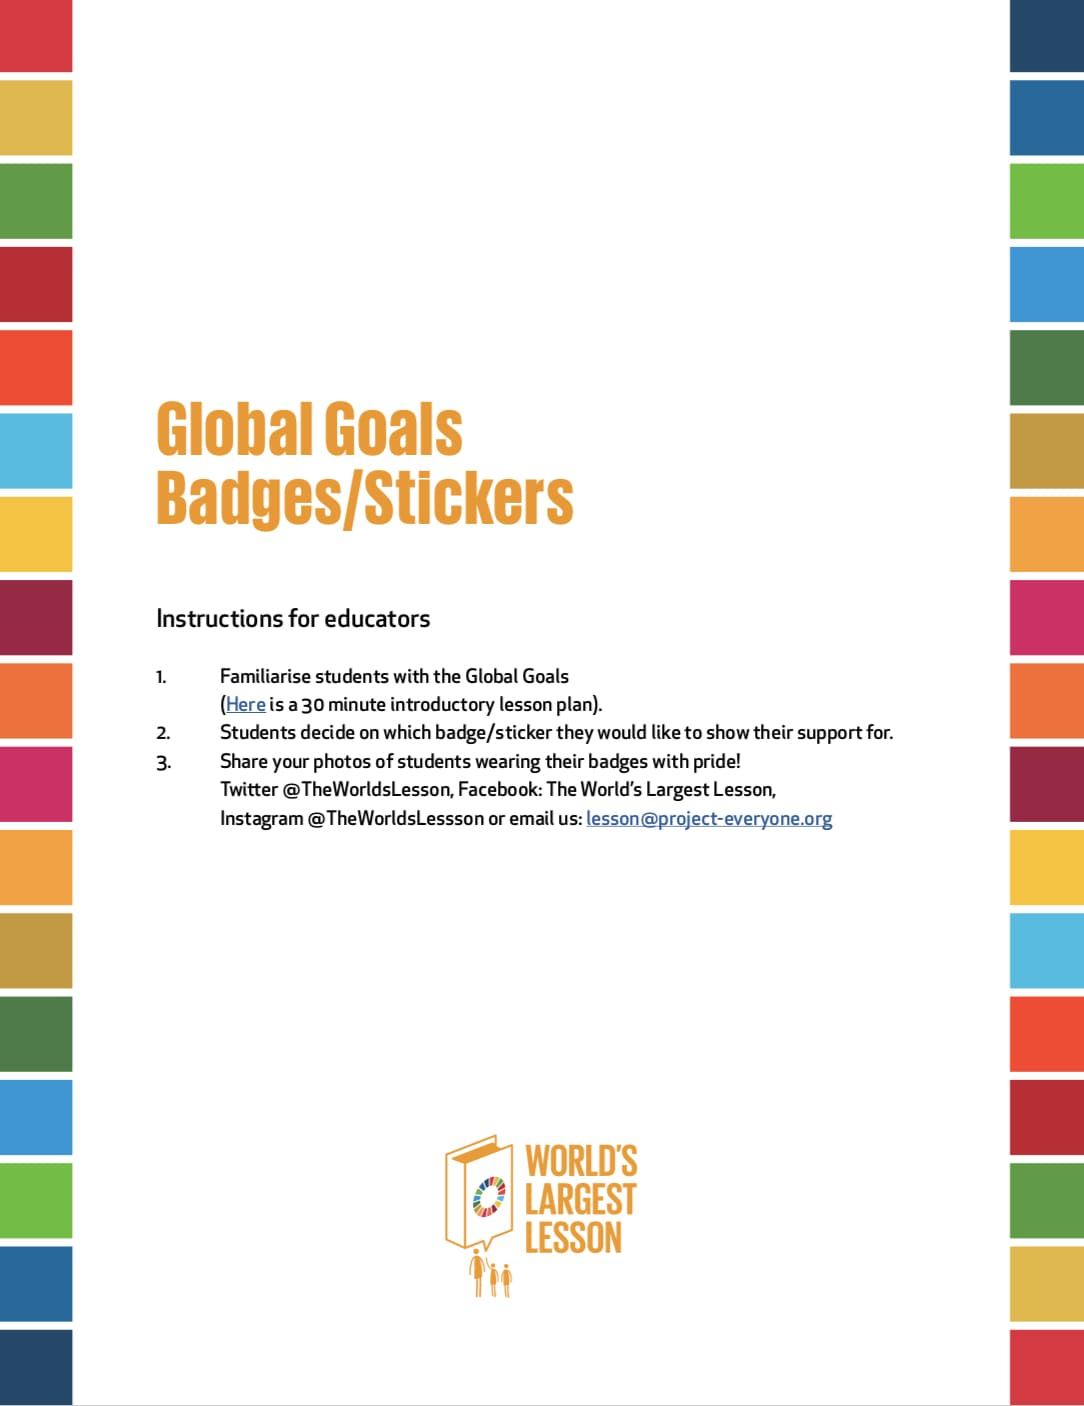 Global Goals Classroom Decorations | The Worlds Largest Lesson